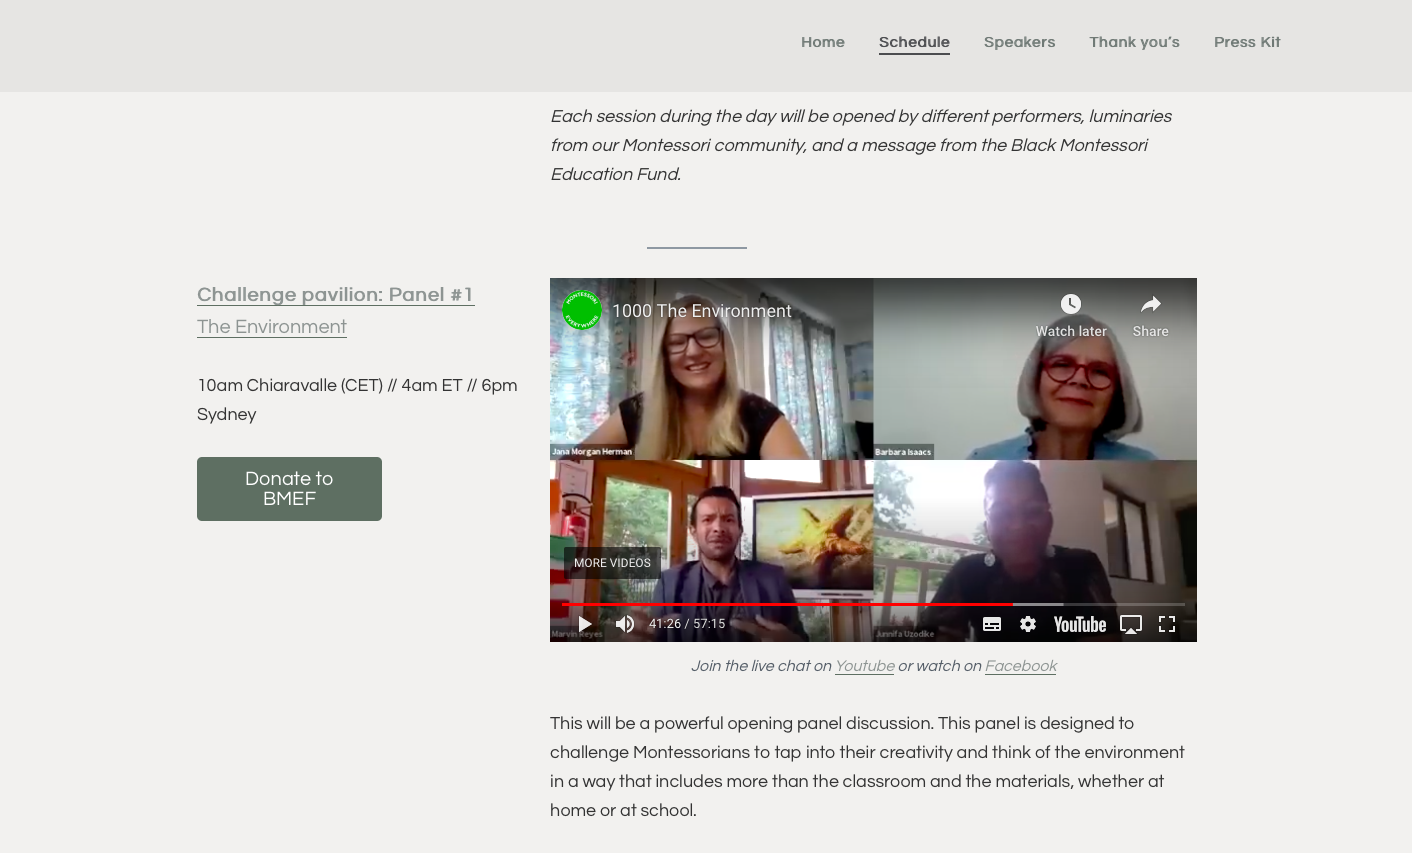 """Marvin Reyes from Vincerola as panelist at the Montessori live virtual Congress """"a 1-day global Montessori event in honor of Dr Montessori's  150th birthday"""""""